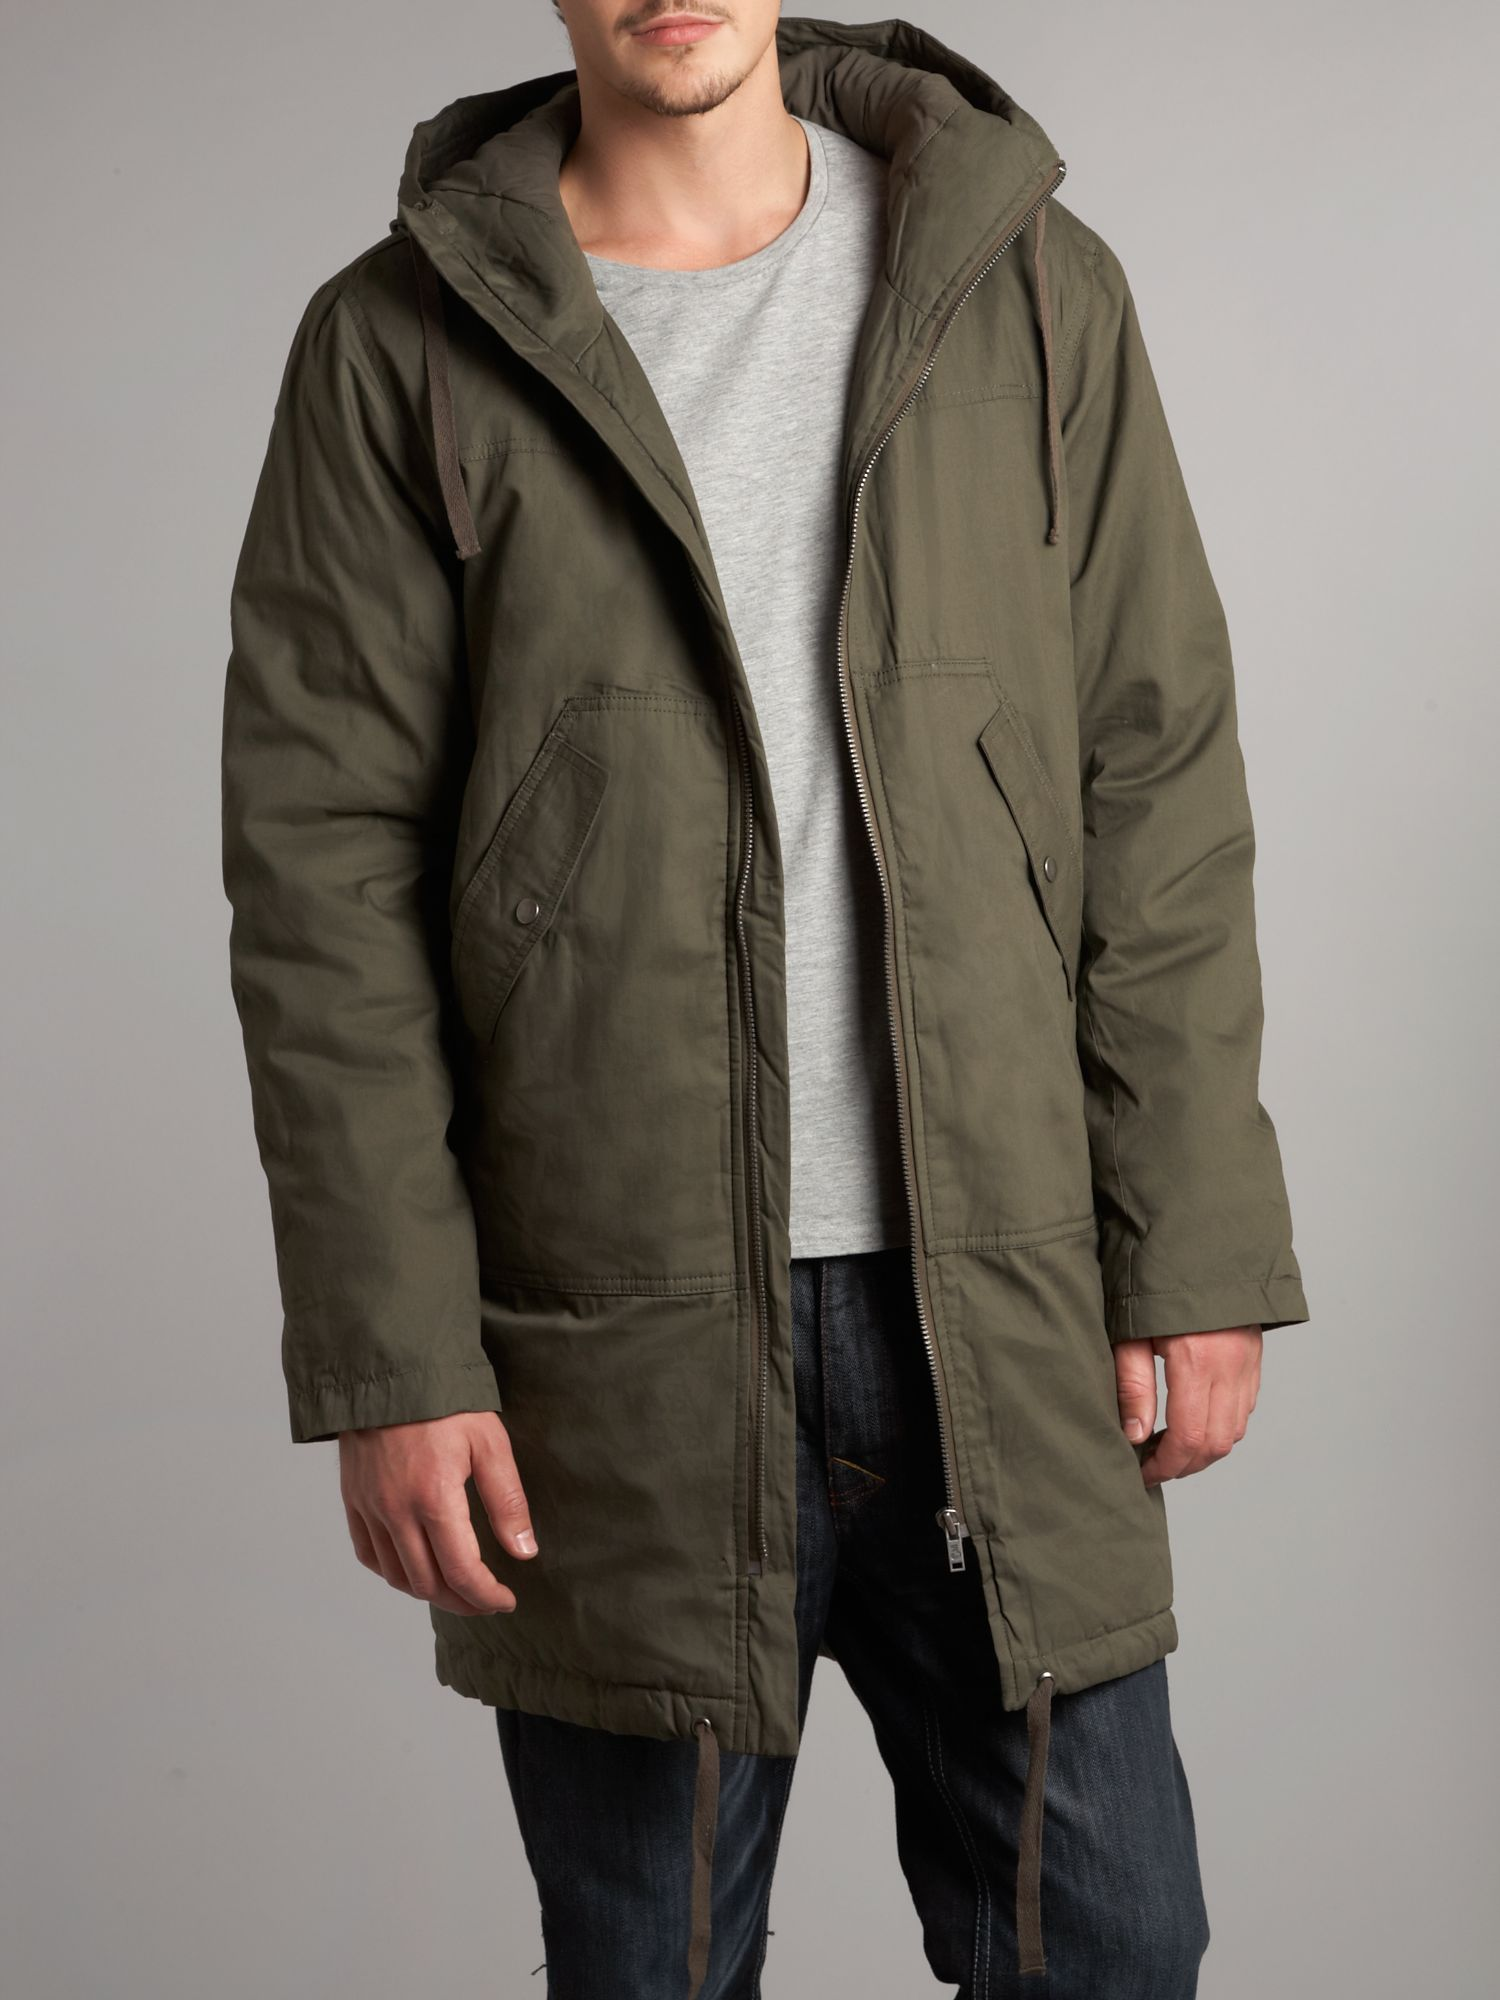 Are you looking for mens jackets and coats cheap casual style online? cybergamesl.ga offers the latest high quality winter jackets and coats for men at great prices. Free shipping world wide.